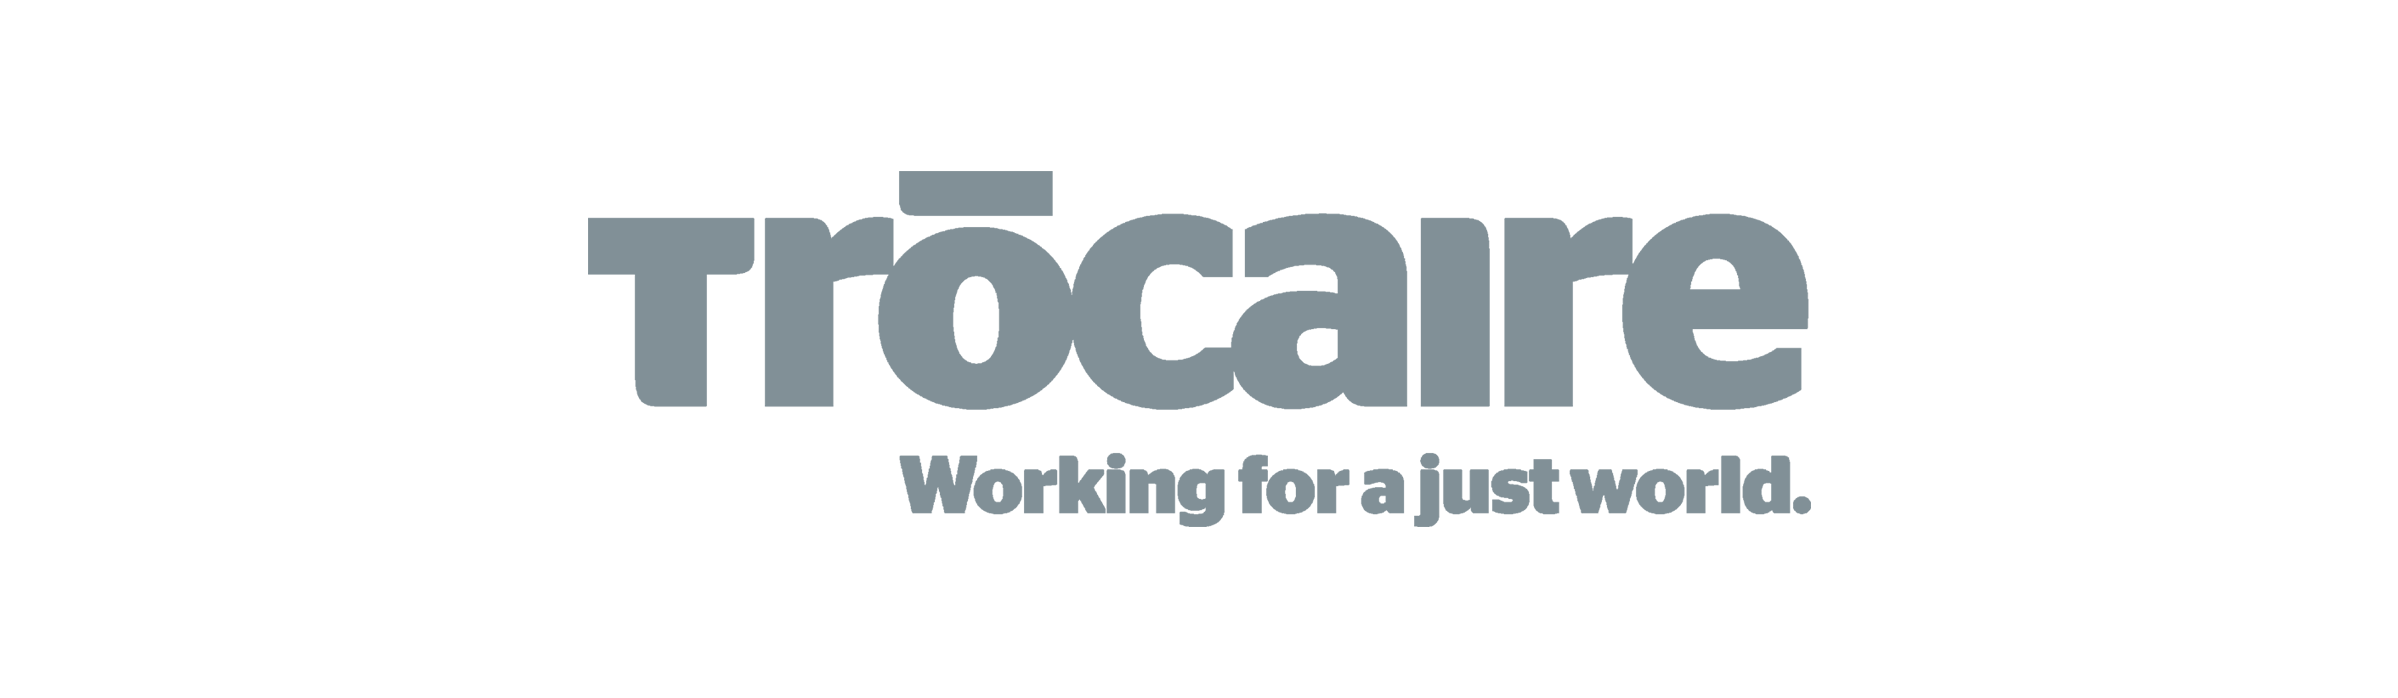 Trocaire-with-strapline2 copy.png